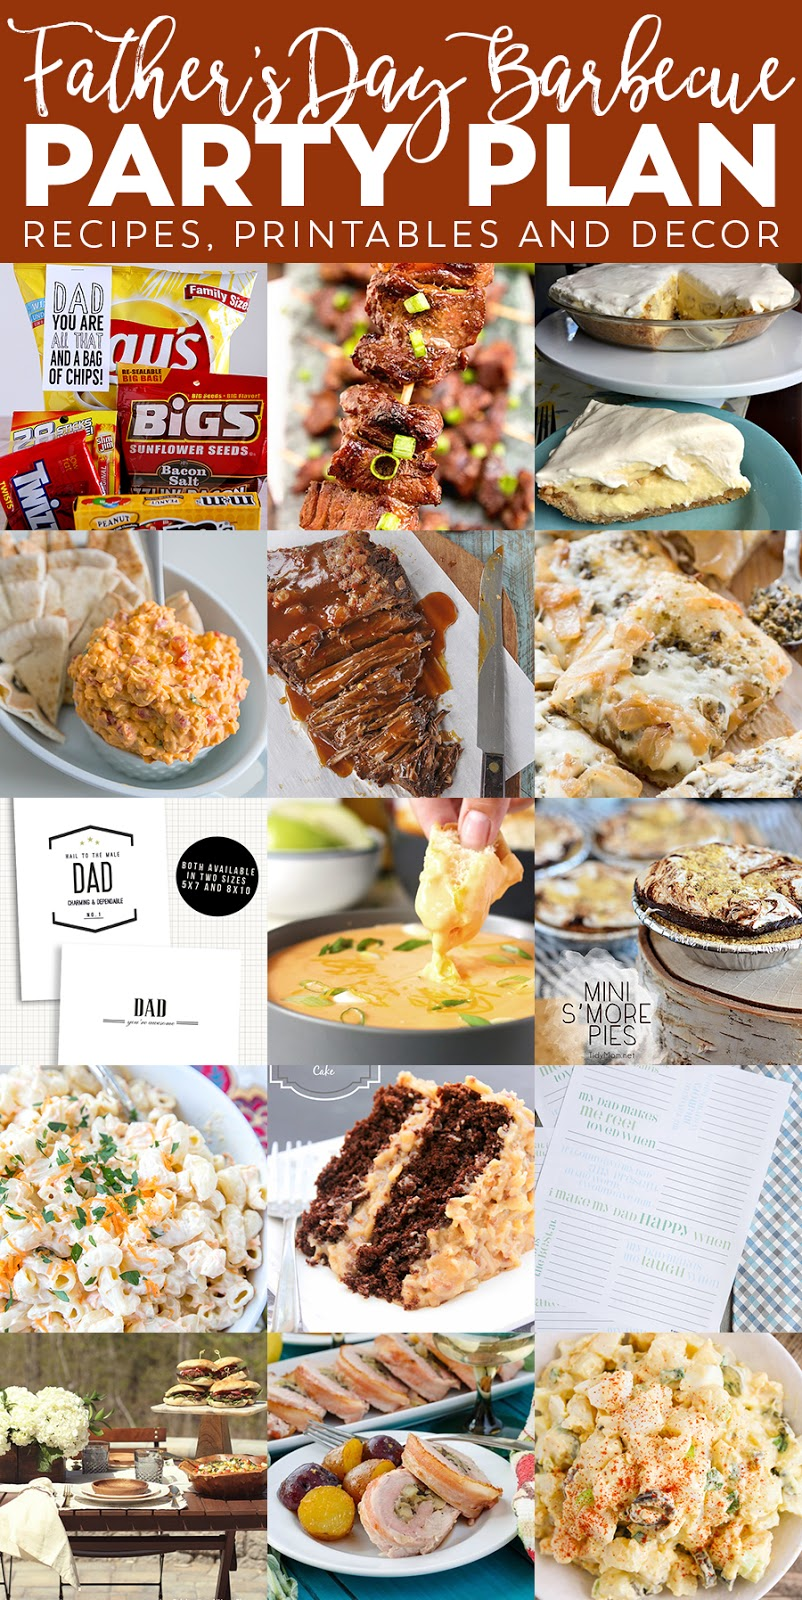 This Father's Day barbecue party plan has everything you need to make it a spectacular day for Dad! From recipes to printables and decor, we've got you covered!